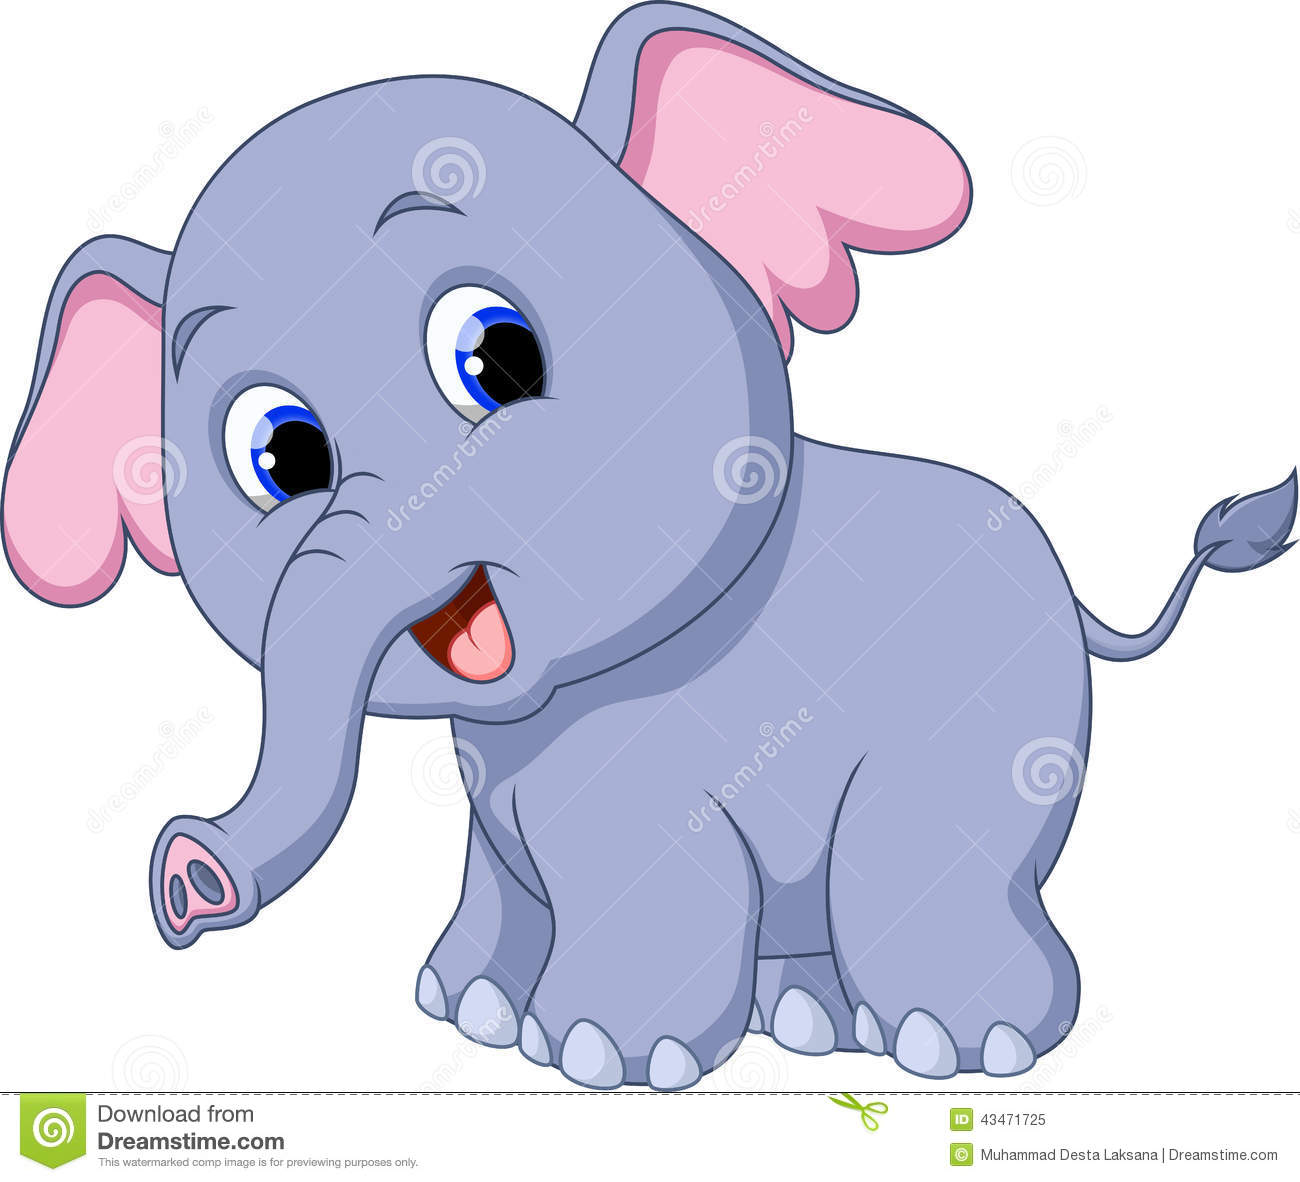 Dessin anim mignon d 39 l phant illustration stock - Elephant en dessin ...